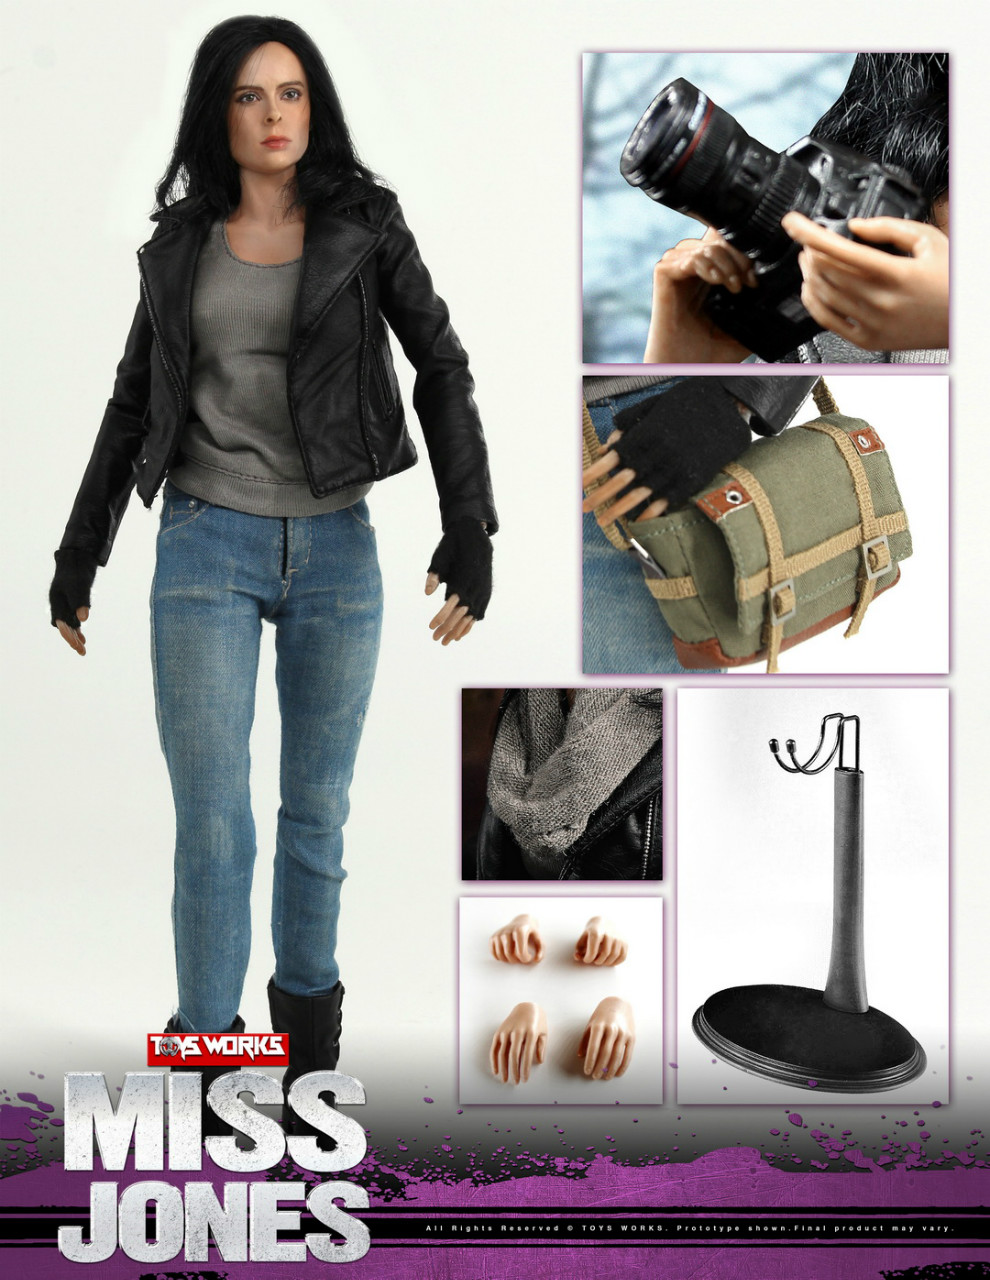 tv - NEW PRODUCT: TOYS WORKS New: 1/6 Miss Jones Miss Jones can move TW007 19164310